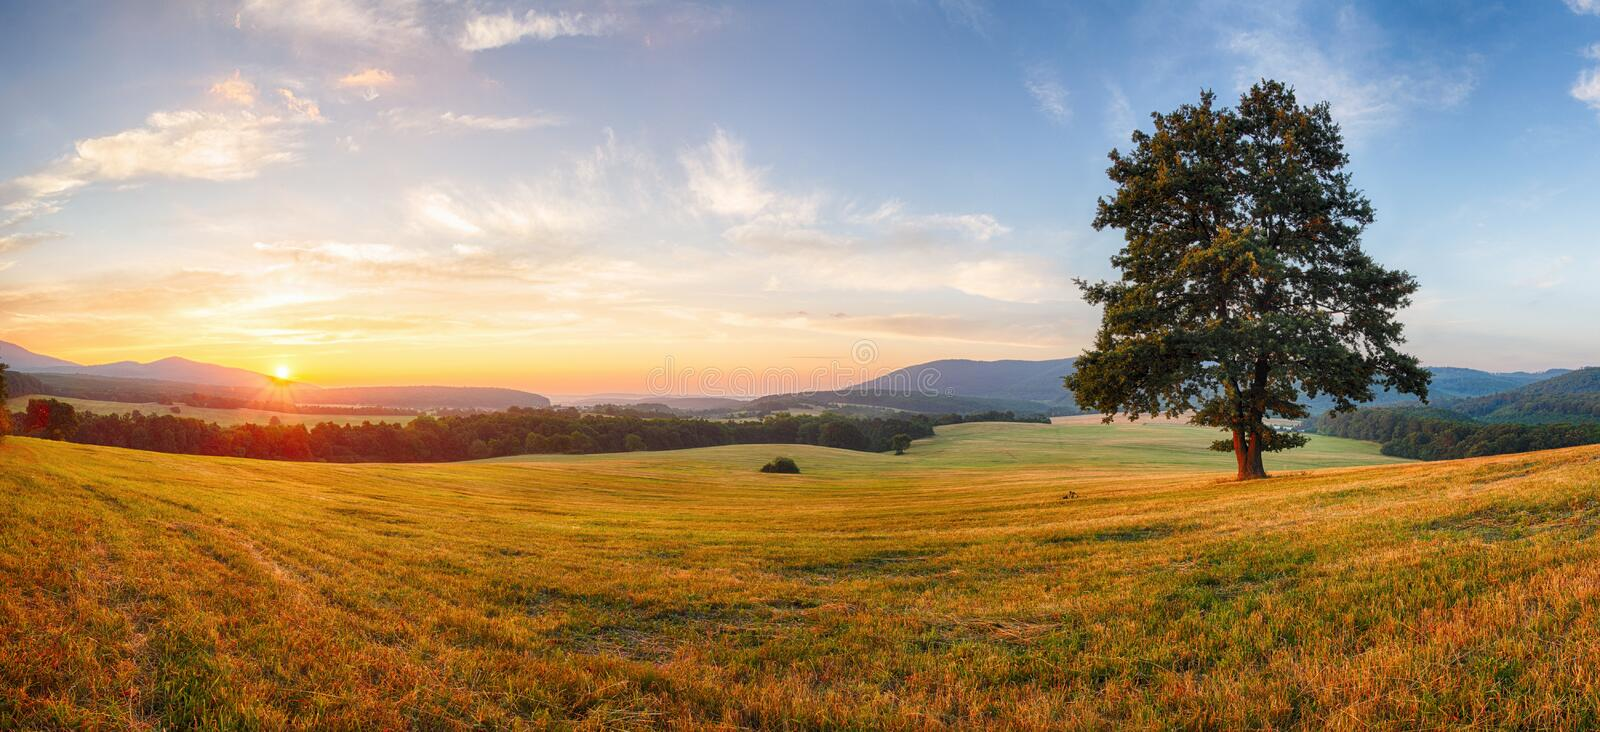 Alone tree on meadow at sunset with sun - panorama royalty free stock photography